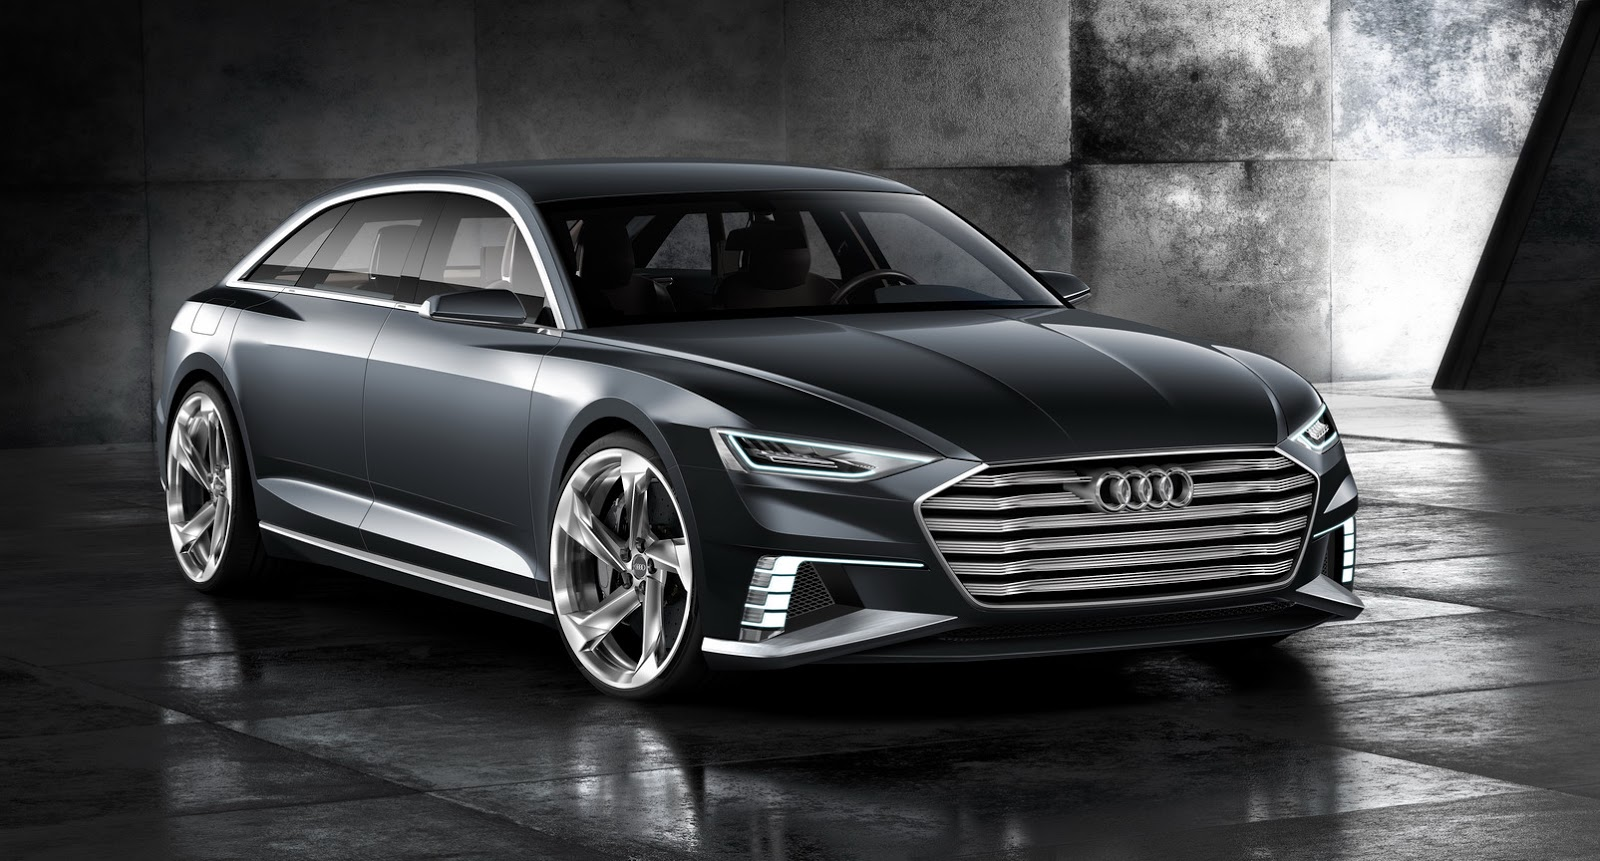 2017 Audi Prologue Avant Concept